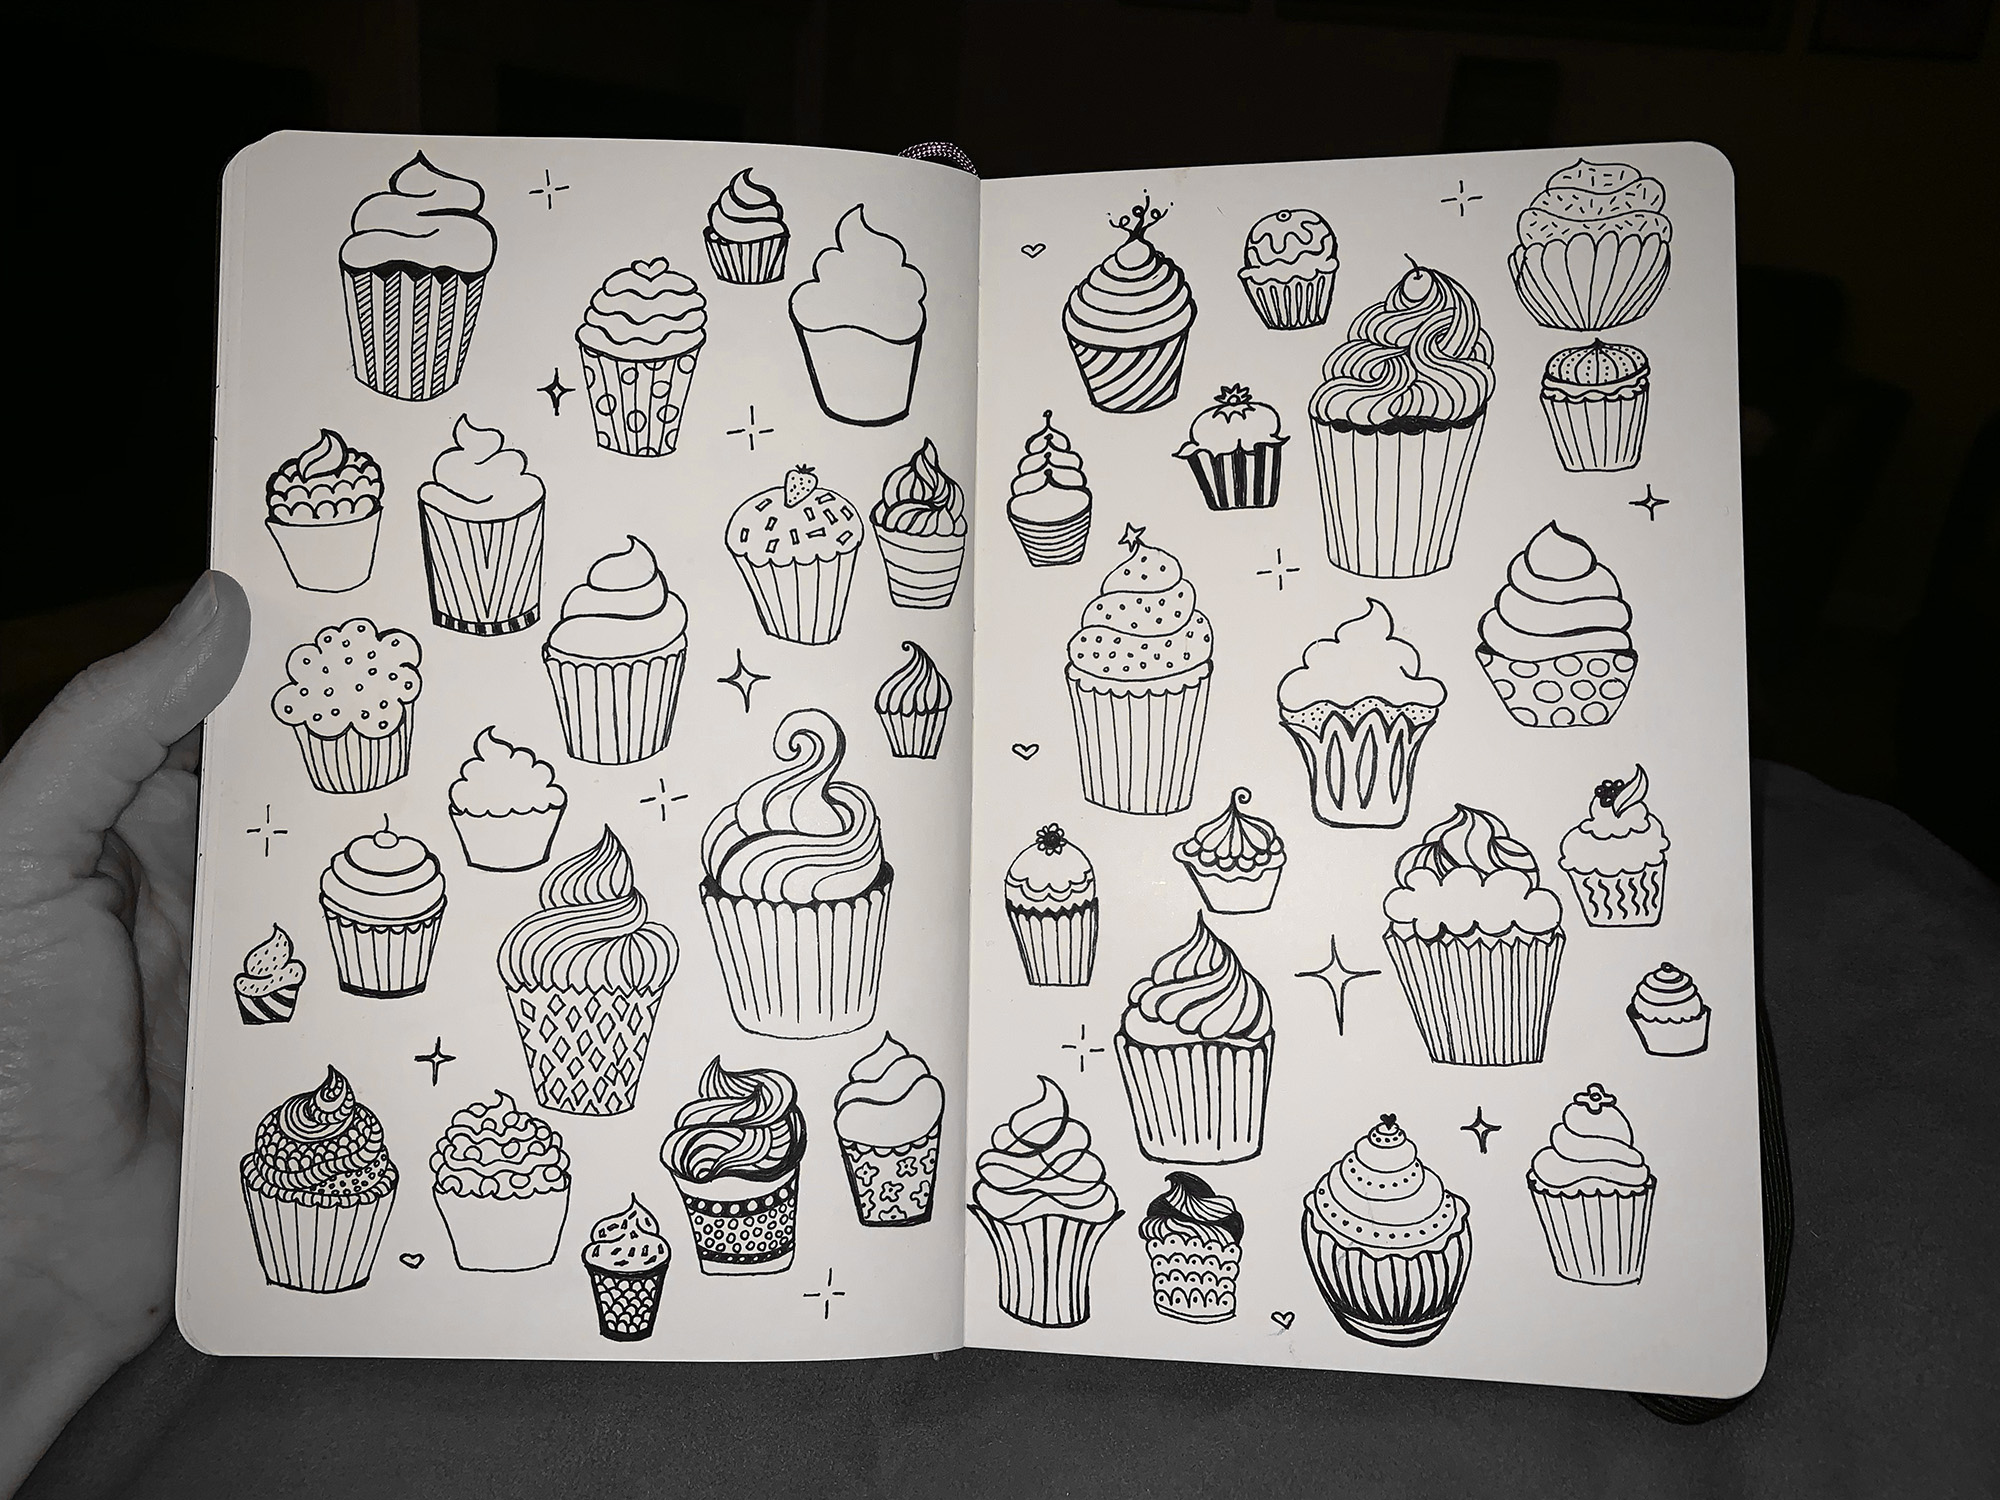 So, first I draw cupcakes in my sketch book. Then…